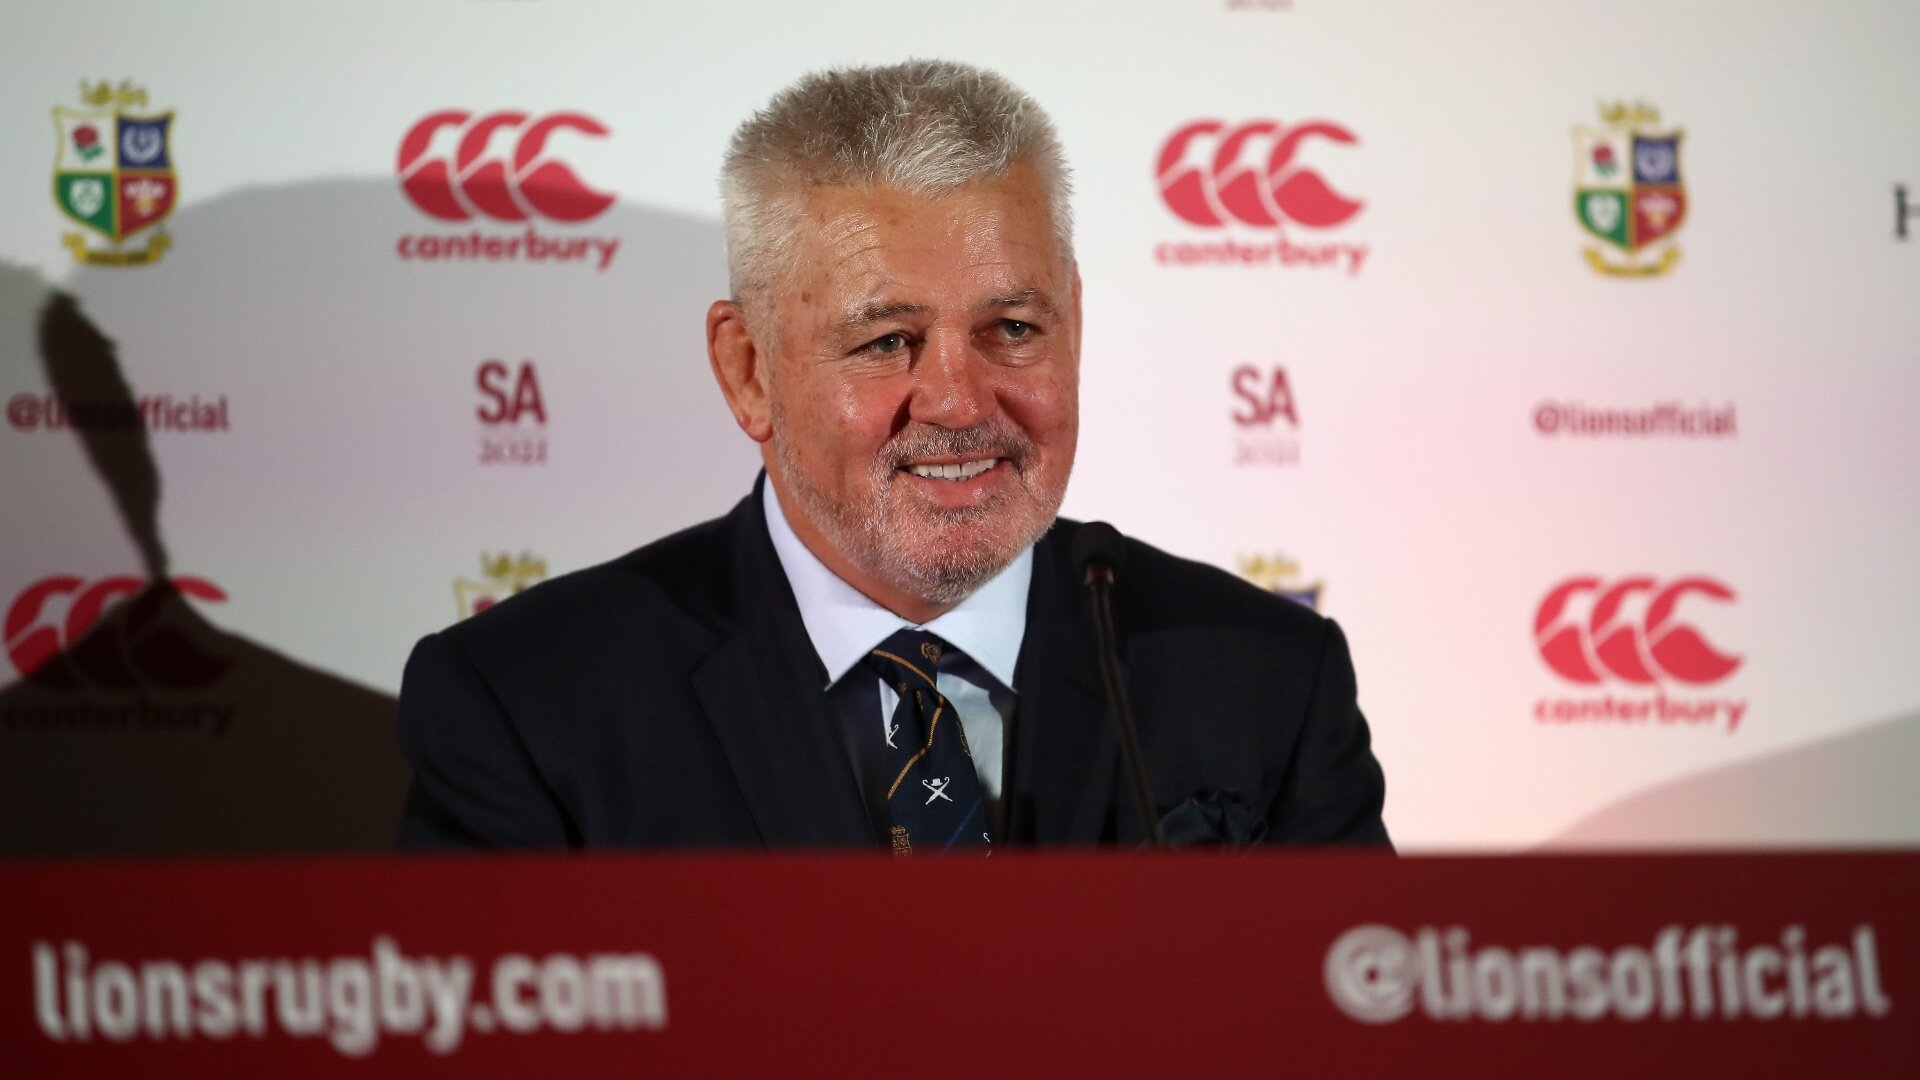 Warren Gatland cautiously optimistic about mooted competition: 'Sometimes under crisis there's an opportunity to fix things.'